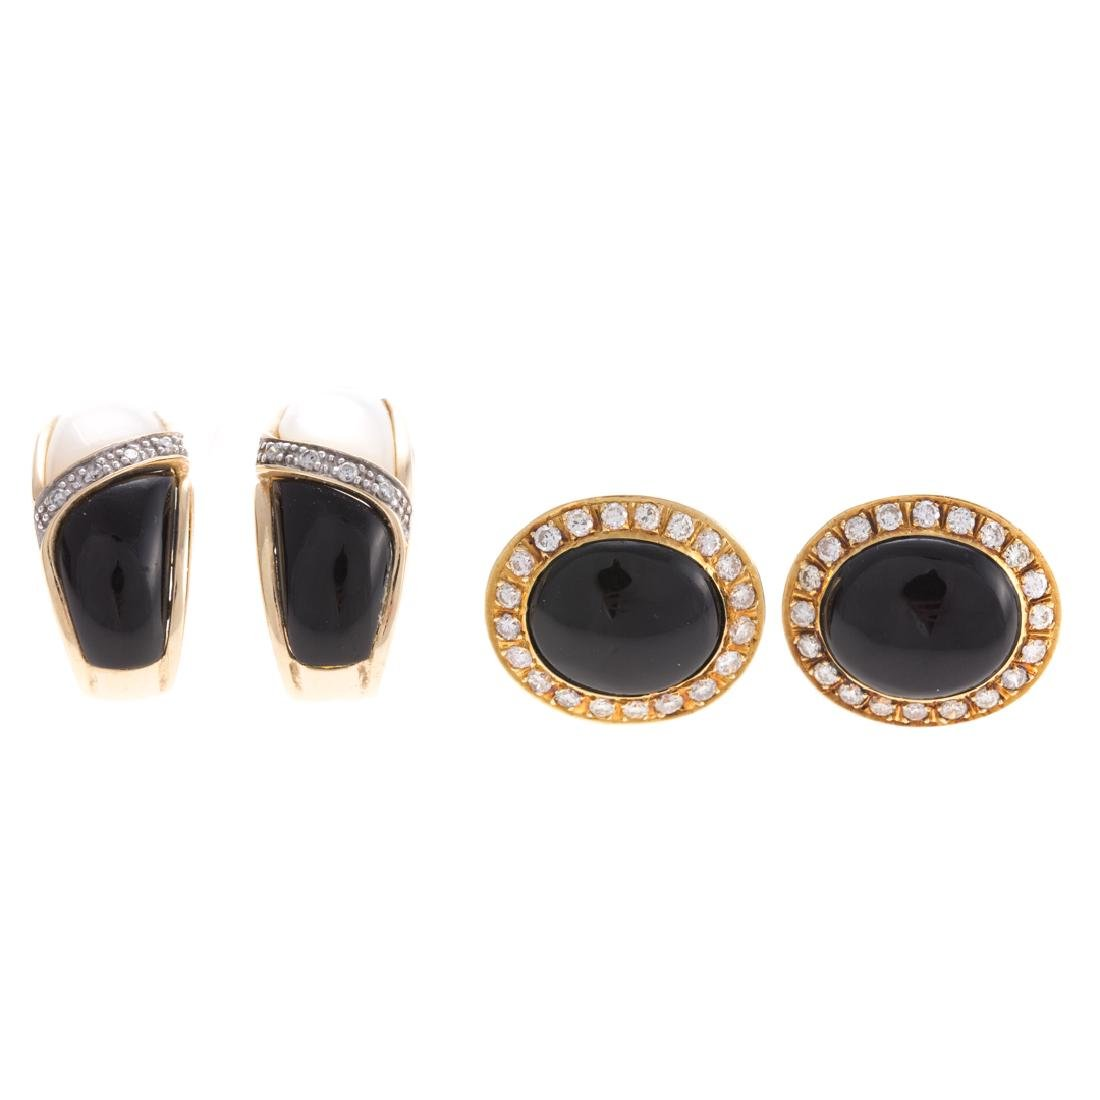 Two Pairs of Black Onyx & Diamond Earrings